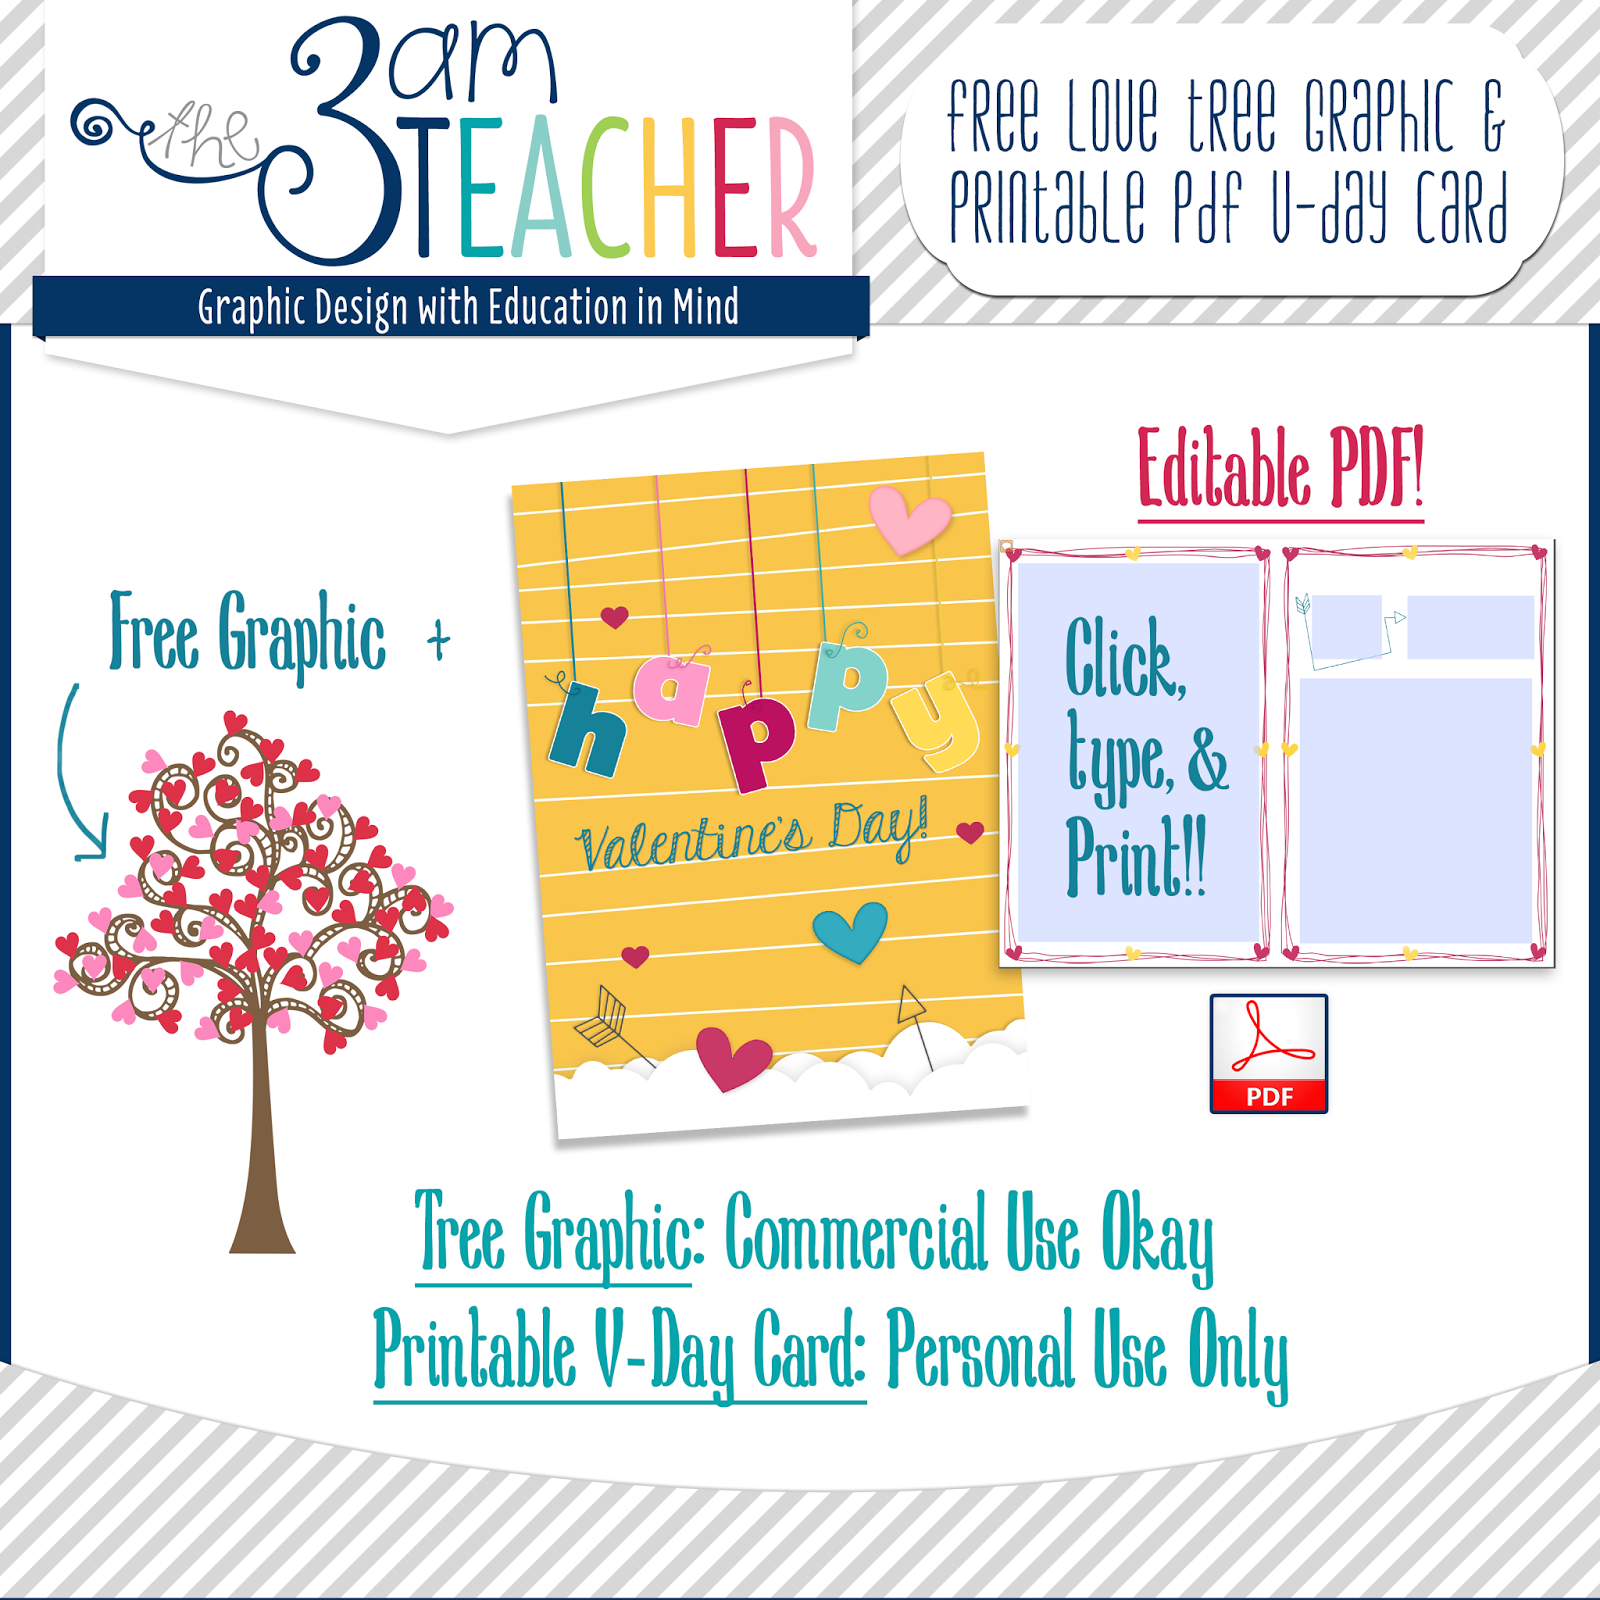 The 3am Teacher: A Free Valentine's Day Gift : Clipart